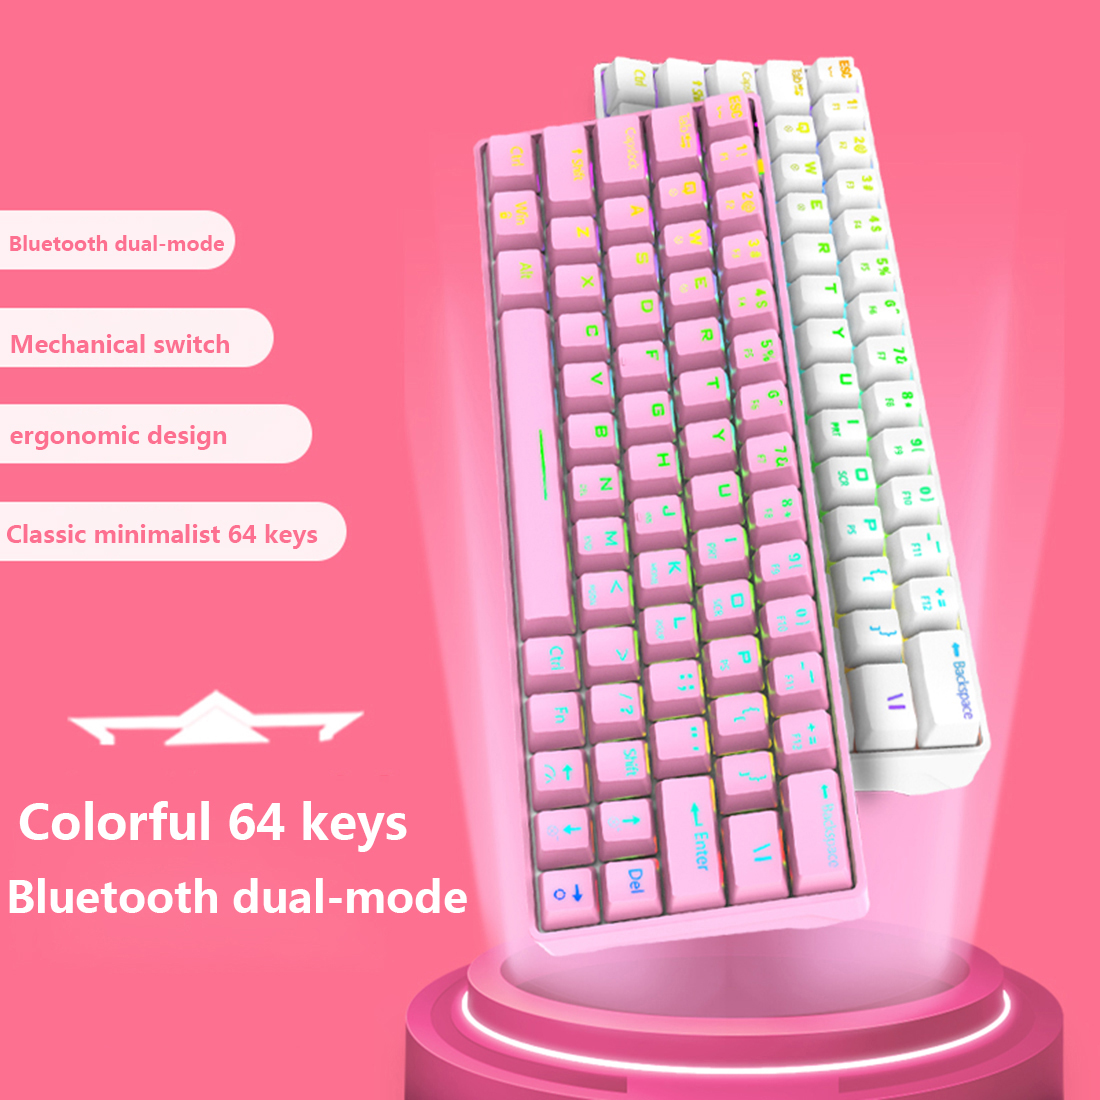 Shark64 Gaming Mechanical Keyboard 64 Keys Bluetooth Wired Dual-mode RGB Backlight